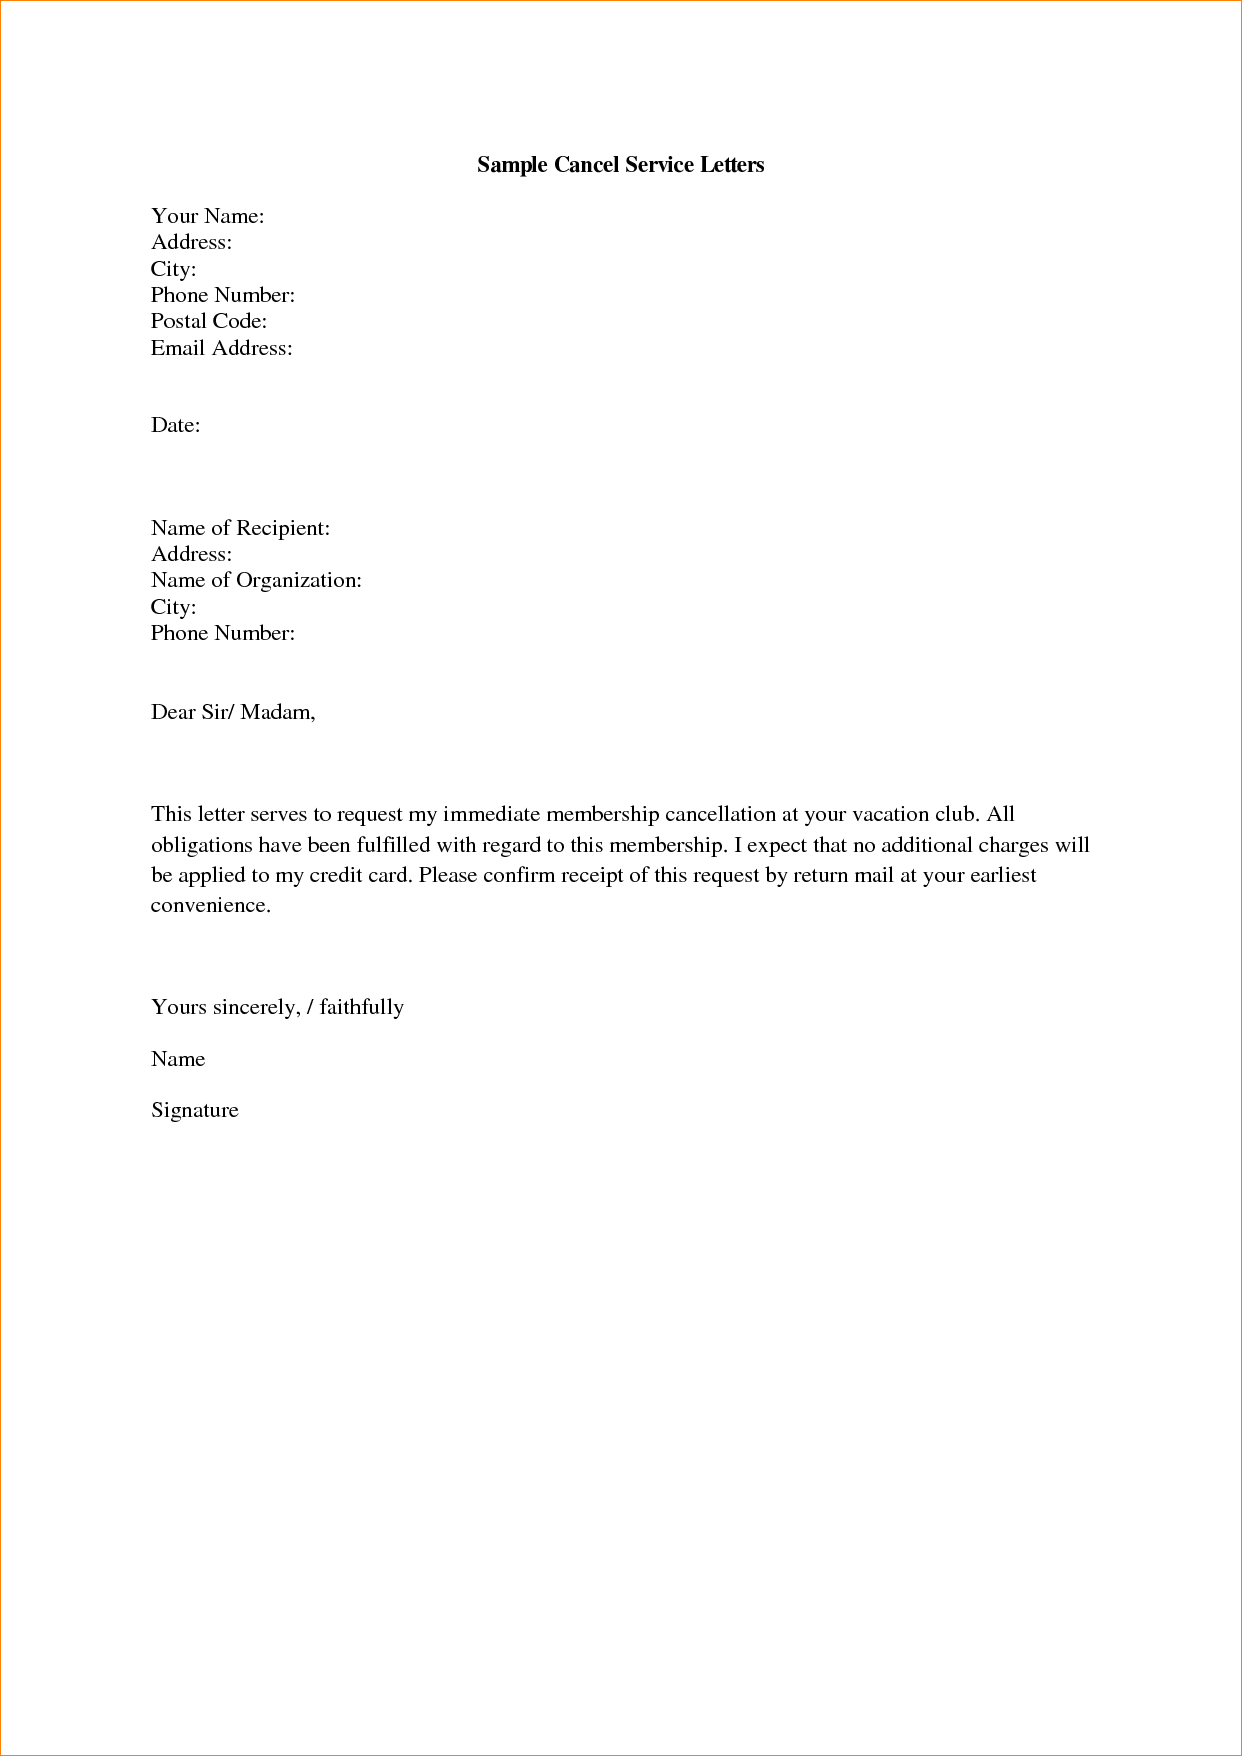 letter to cancel service   Yelom.myphonecompany.co